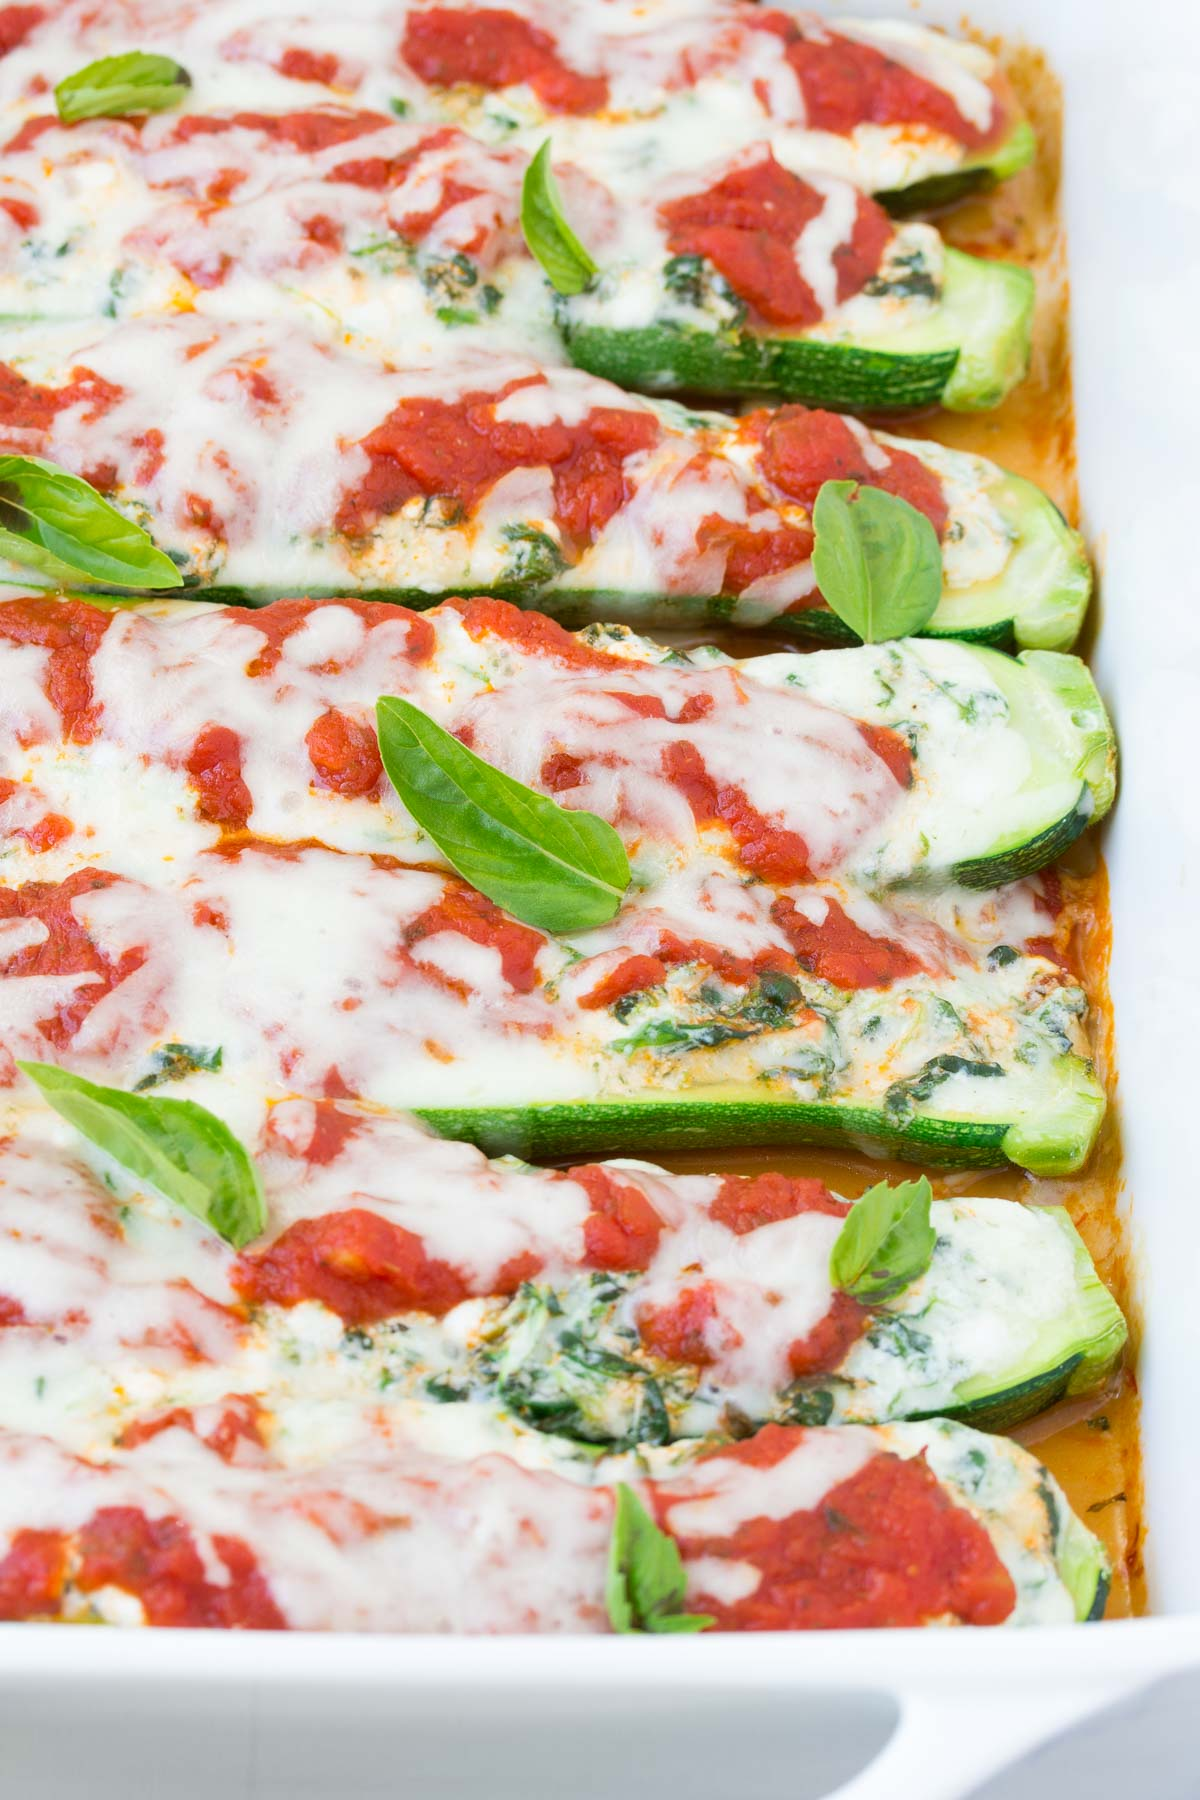 closeup view of baked stuffed zucchini in white baking dish